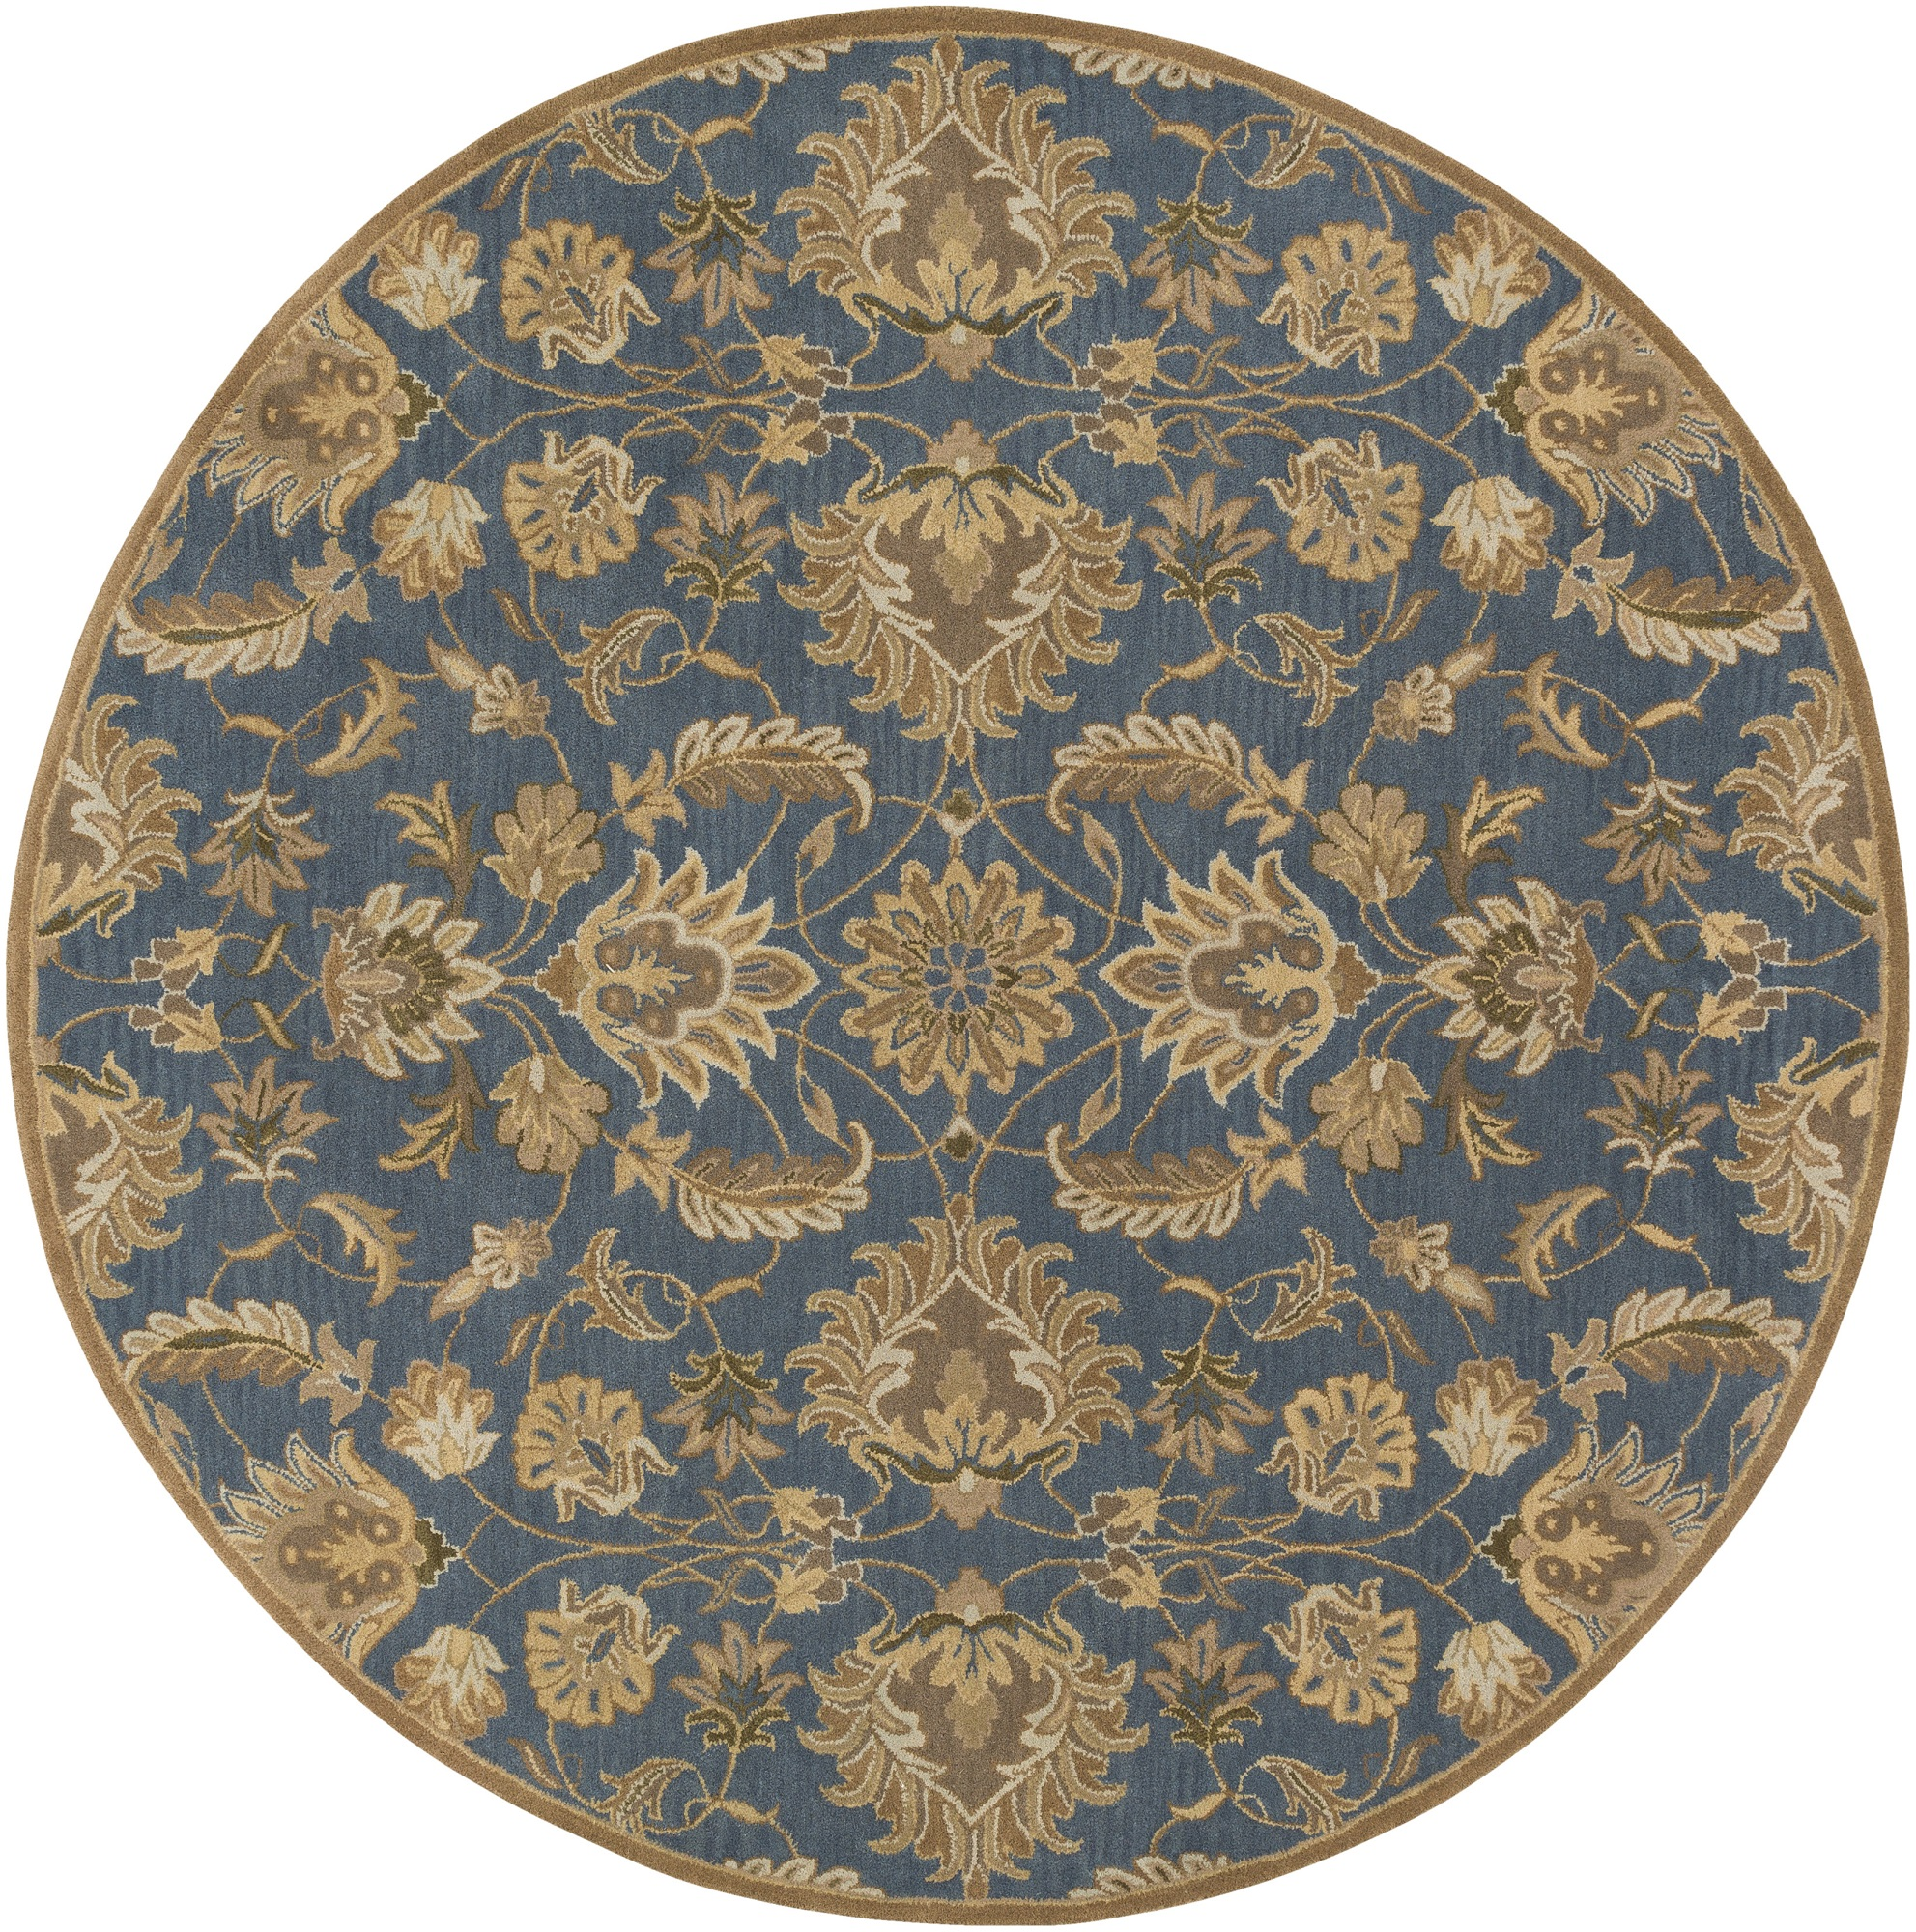 8' Brown and Blue Floral Pattern Hand-Tufted Round Area Throw Rug